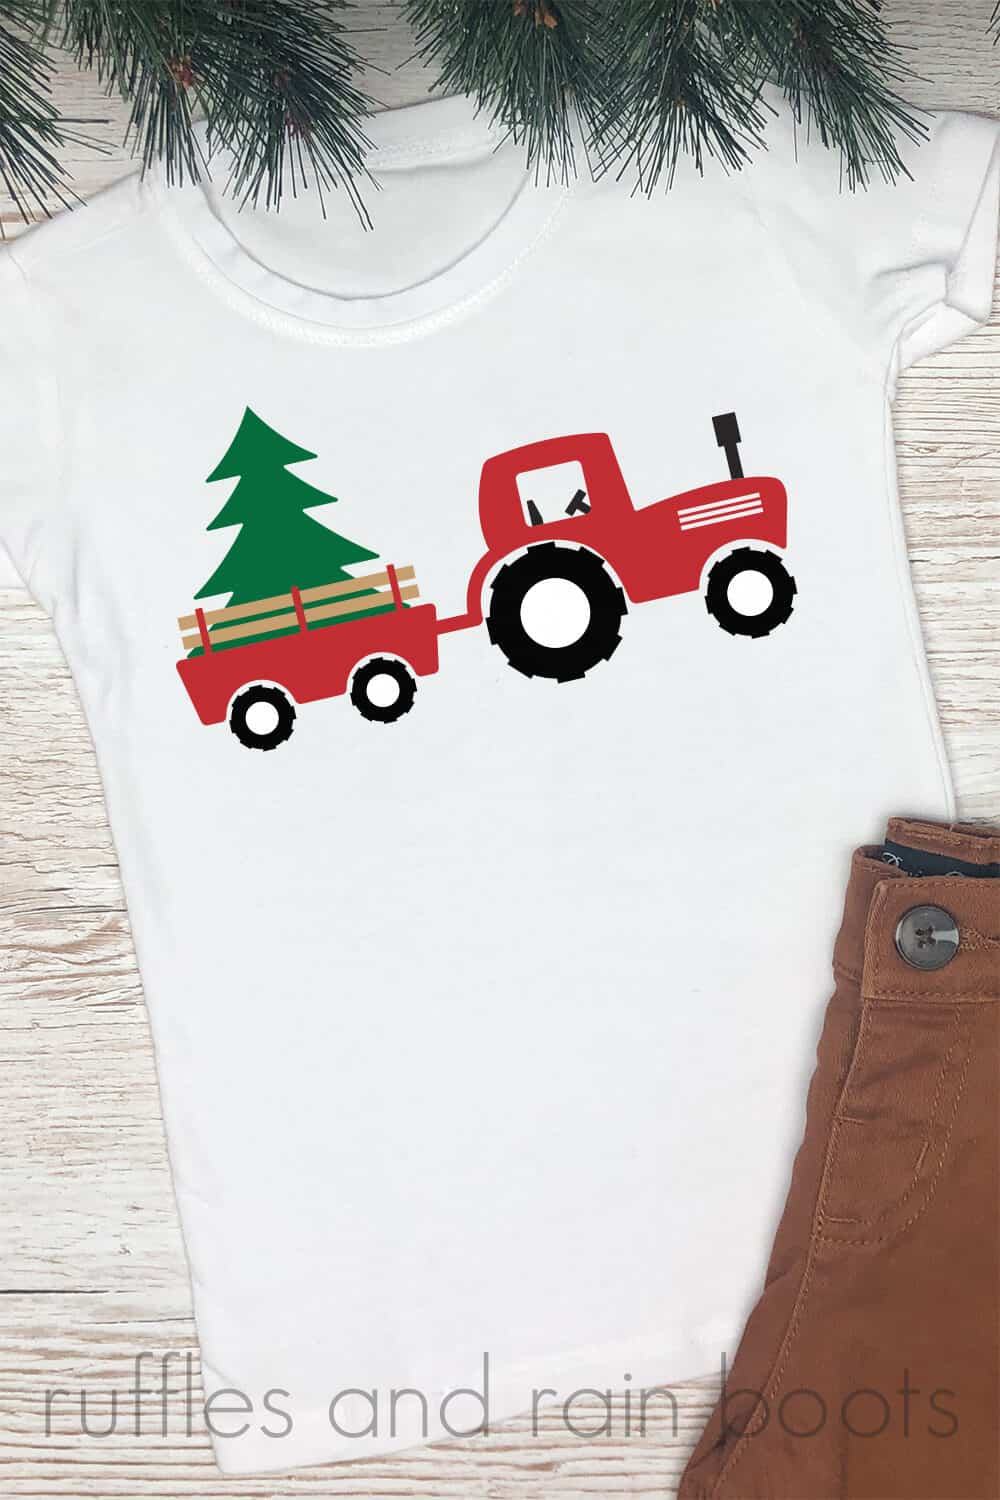 white t shirt with pine needles and brown pants on wood background with red green and black Christmas tractor svg